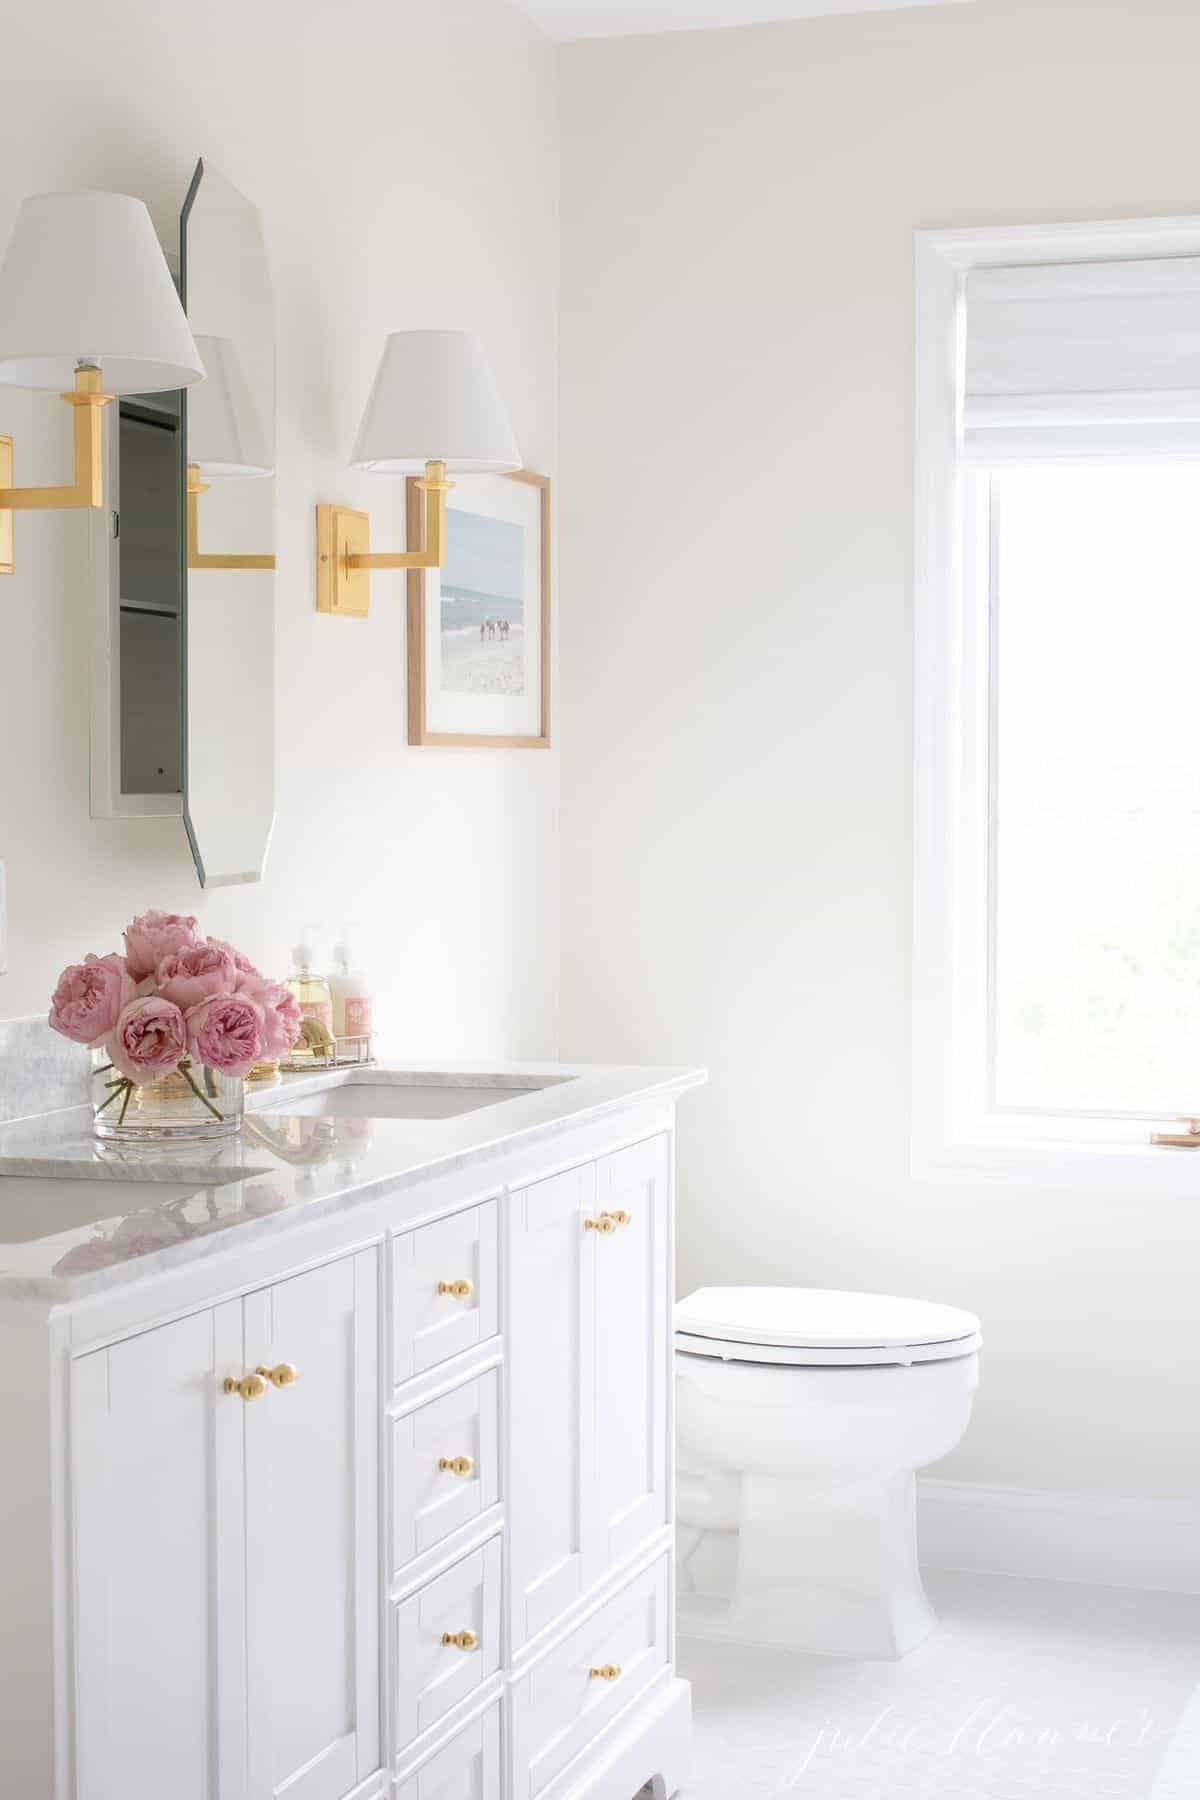 White bathroom with gold touches, mirrored medicine cabinet is slightly ajar. #spabath